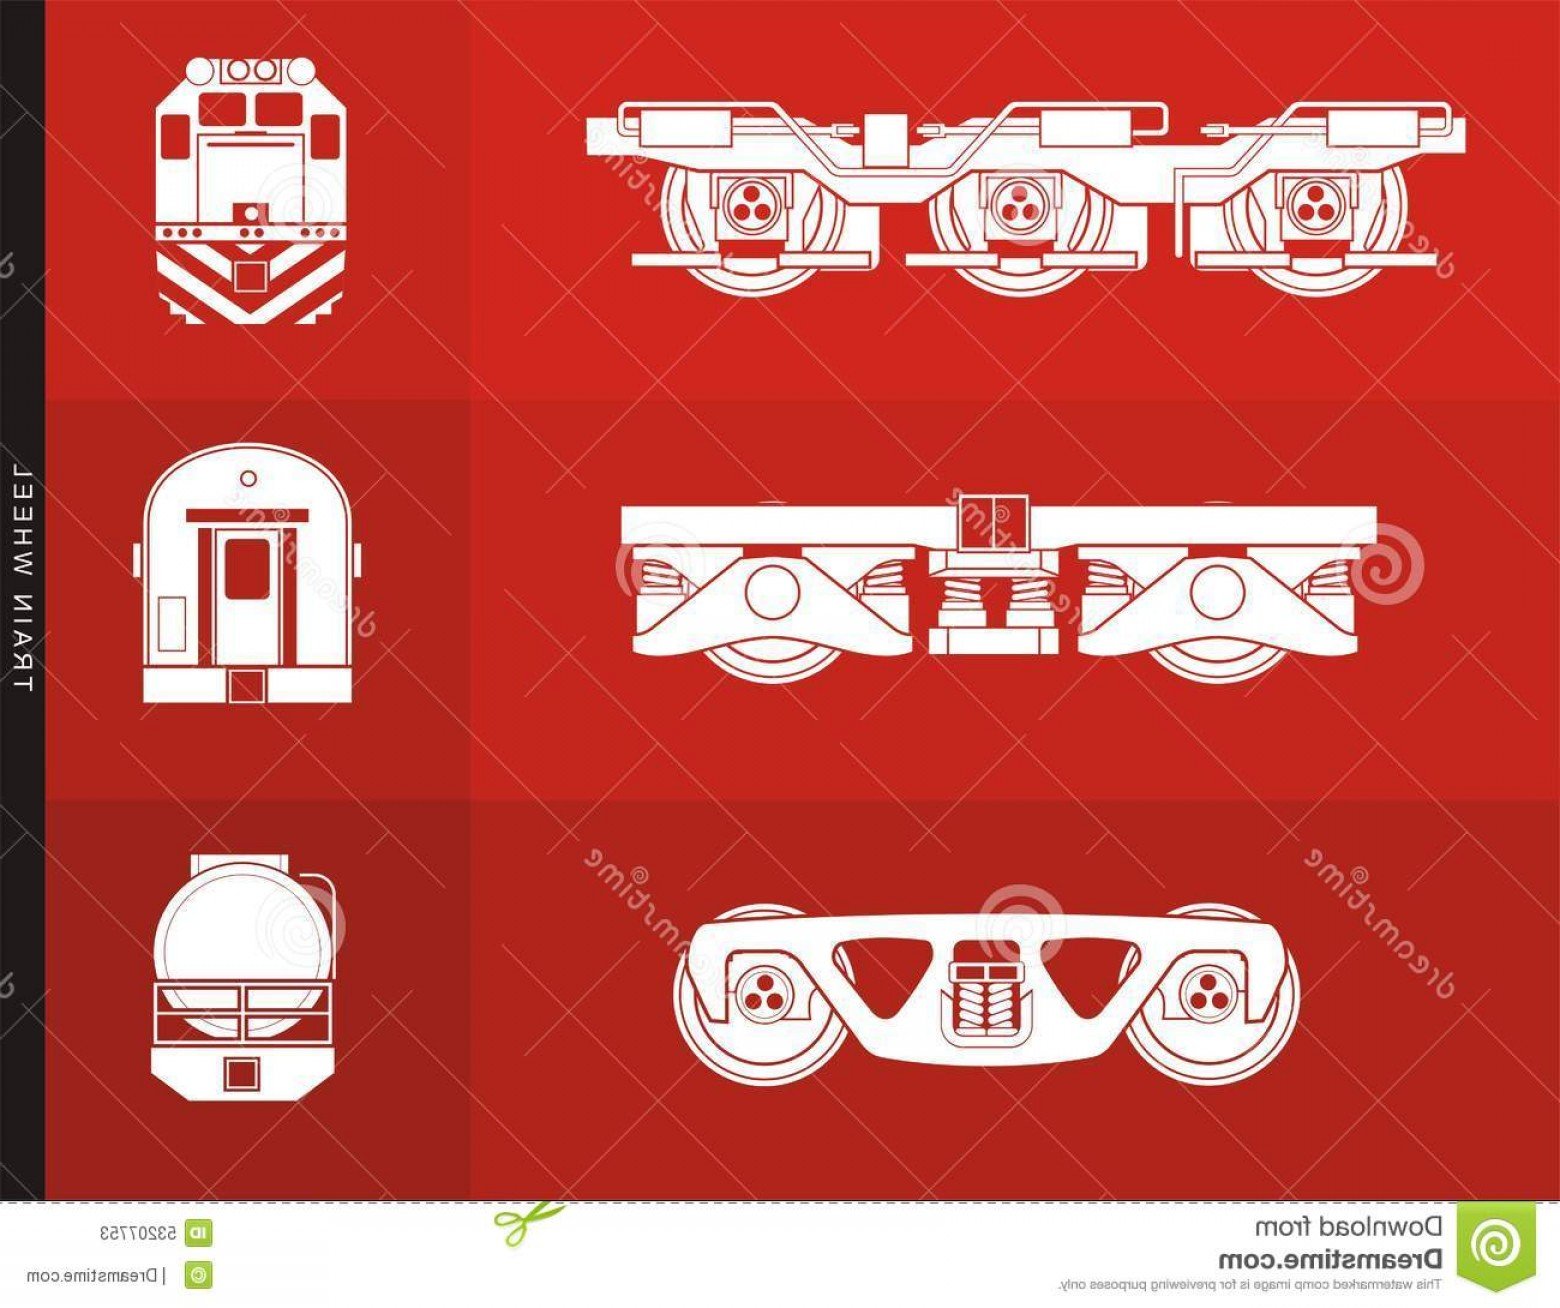 Vector Train Wheel: Stock Illustration Train Wheel Illustration Contains Illustrations Locomotive Car Coach Their Wheels Image